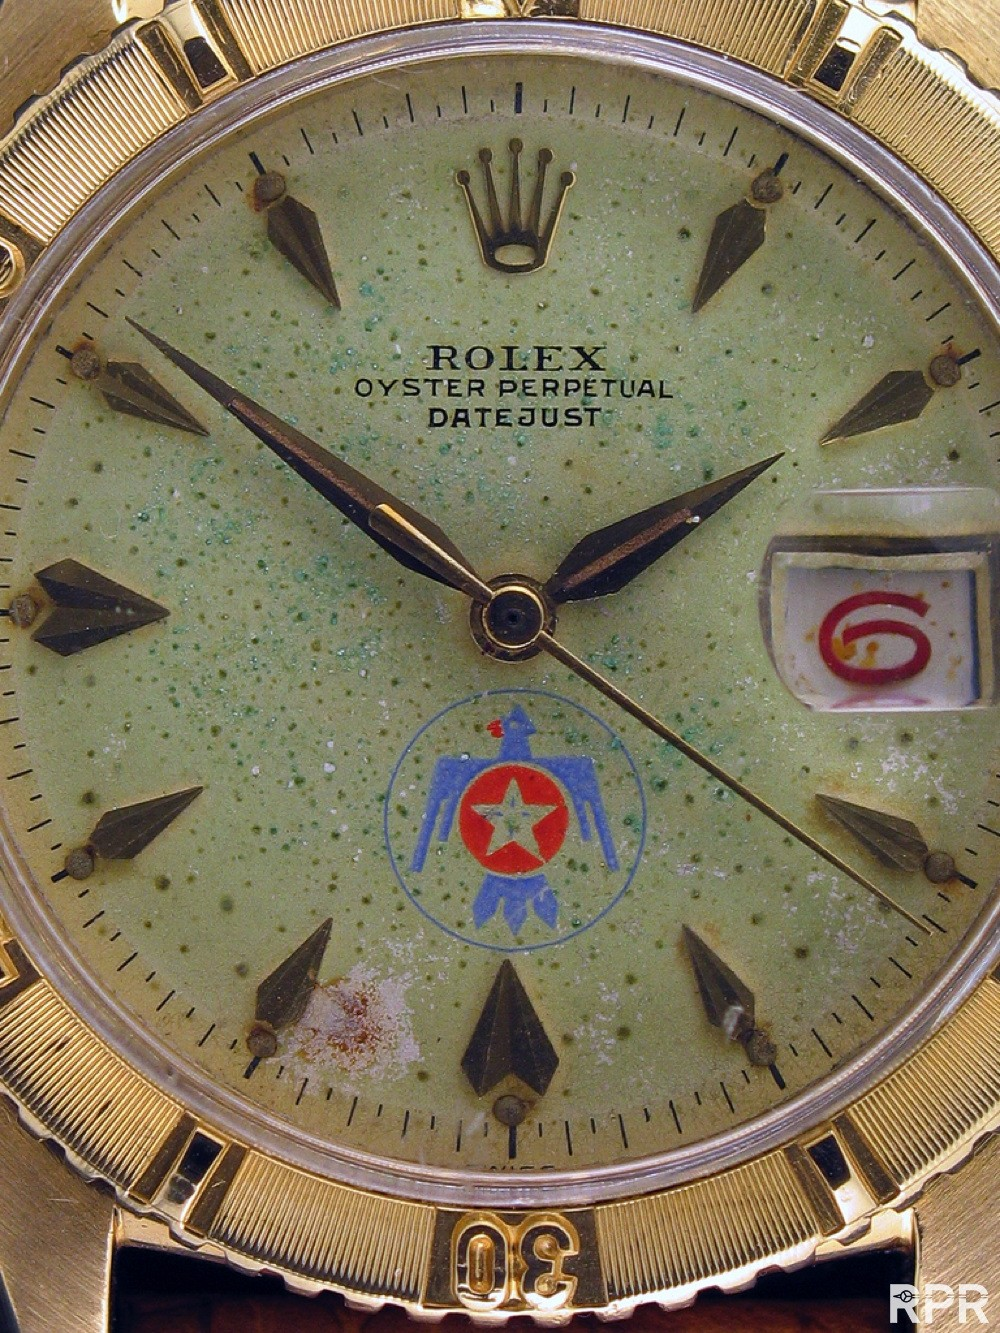 Maultsby Rolex